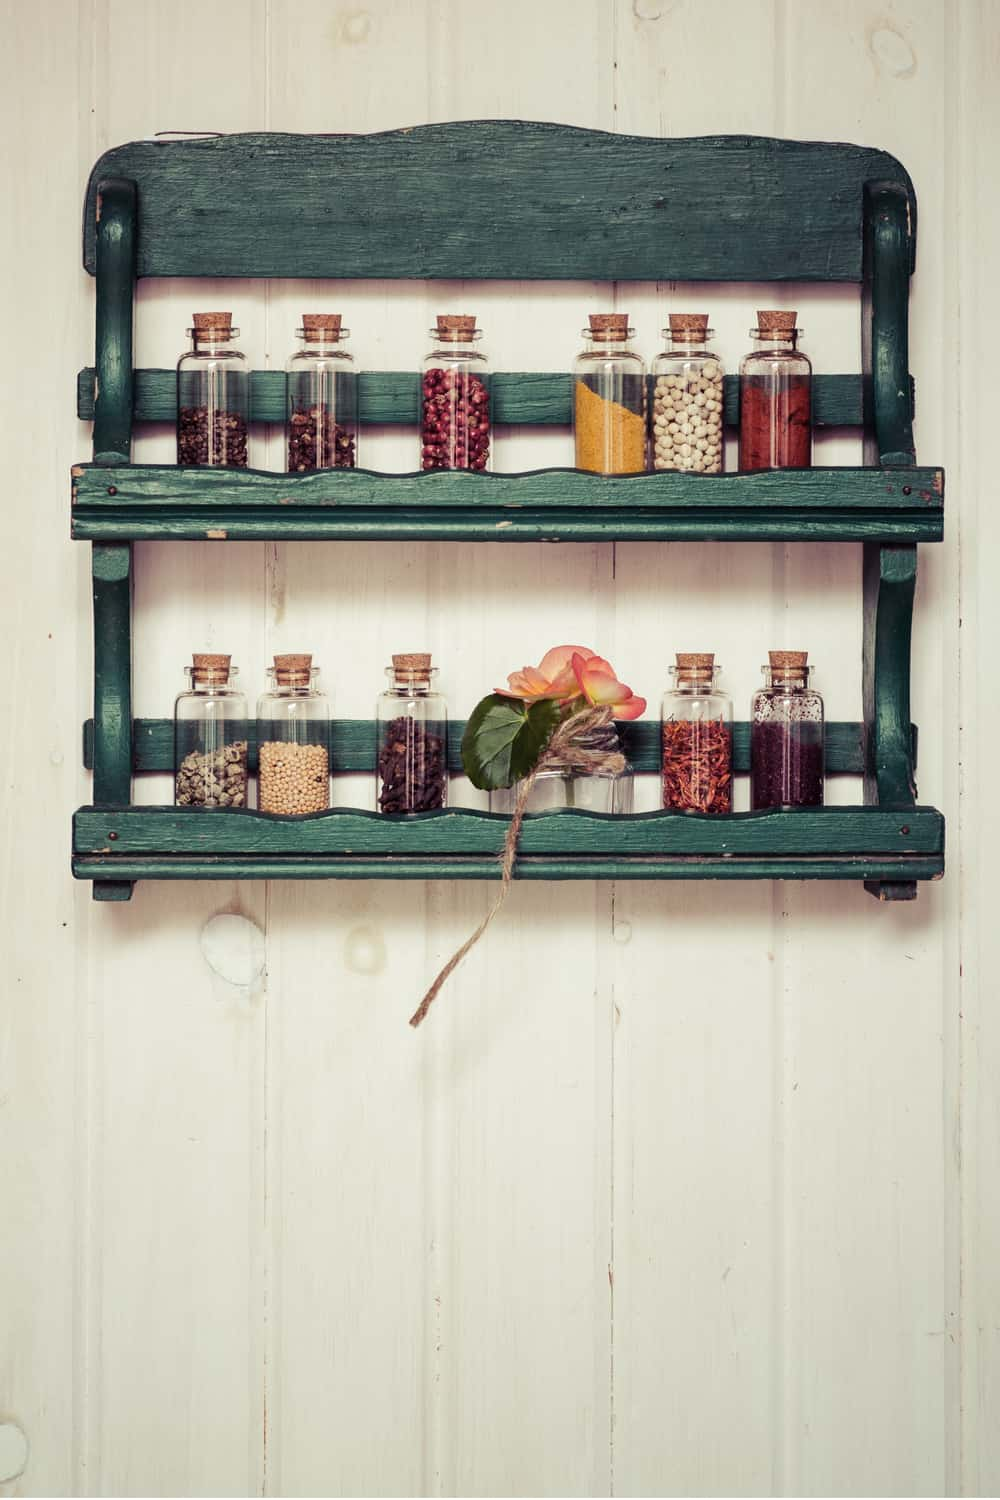 19 Homemade Spice Rack Plans You Can DIY Easily